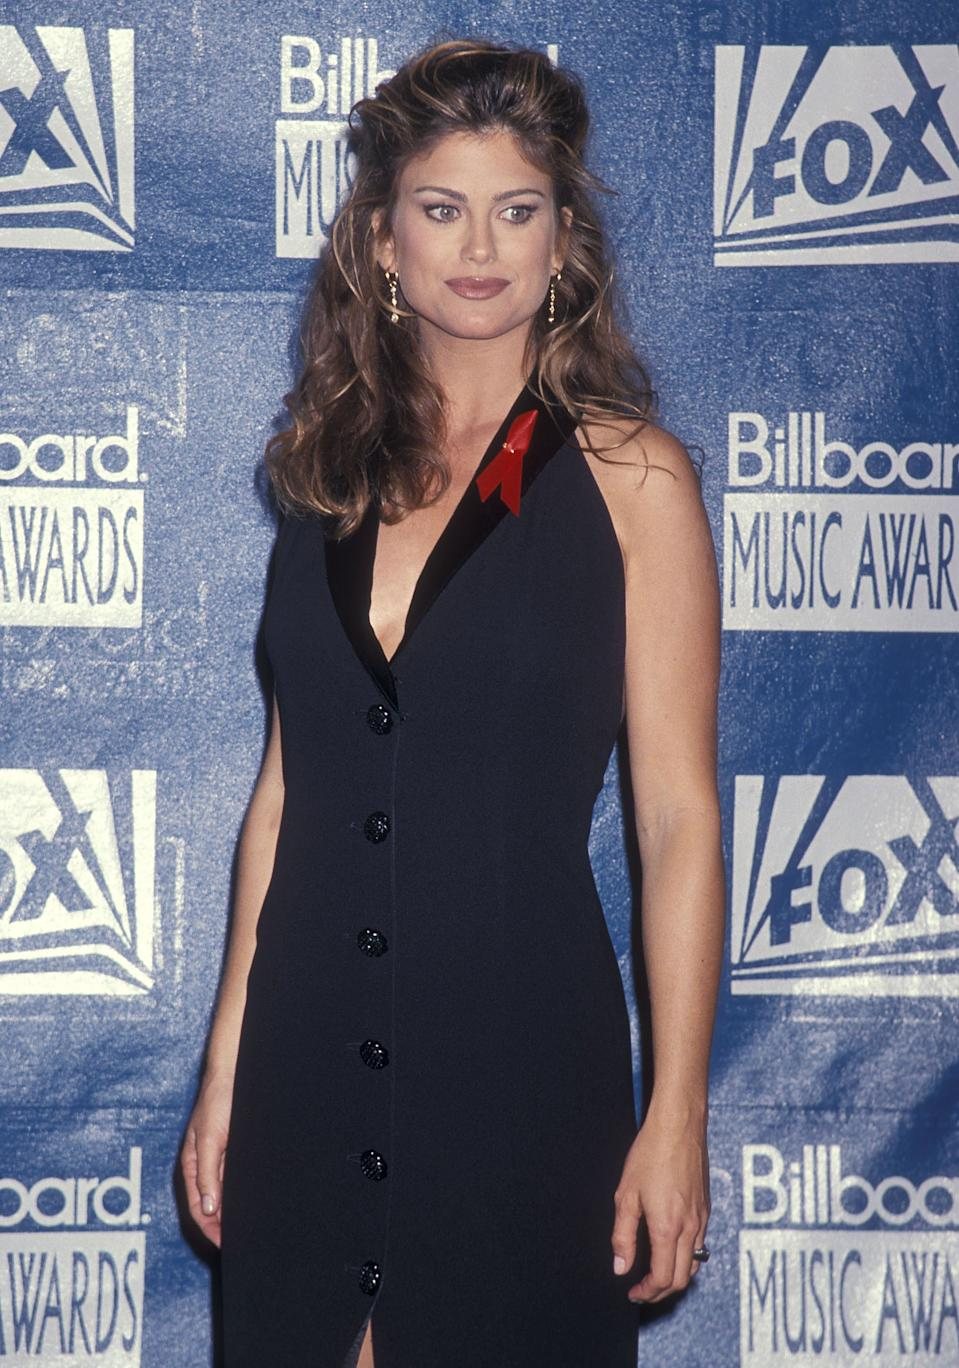 Kathy Ireland reflects on the strict industry standards she faced as a model. (Photo: Getty Images)